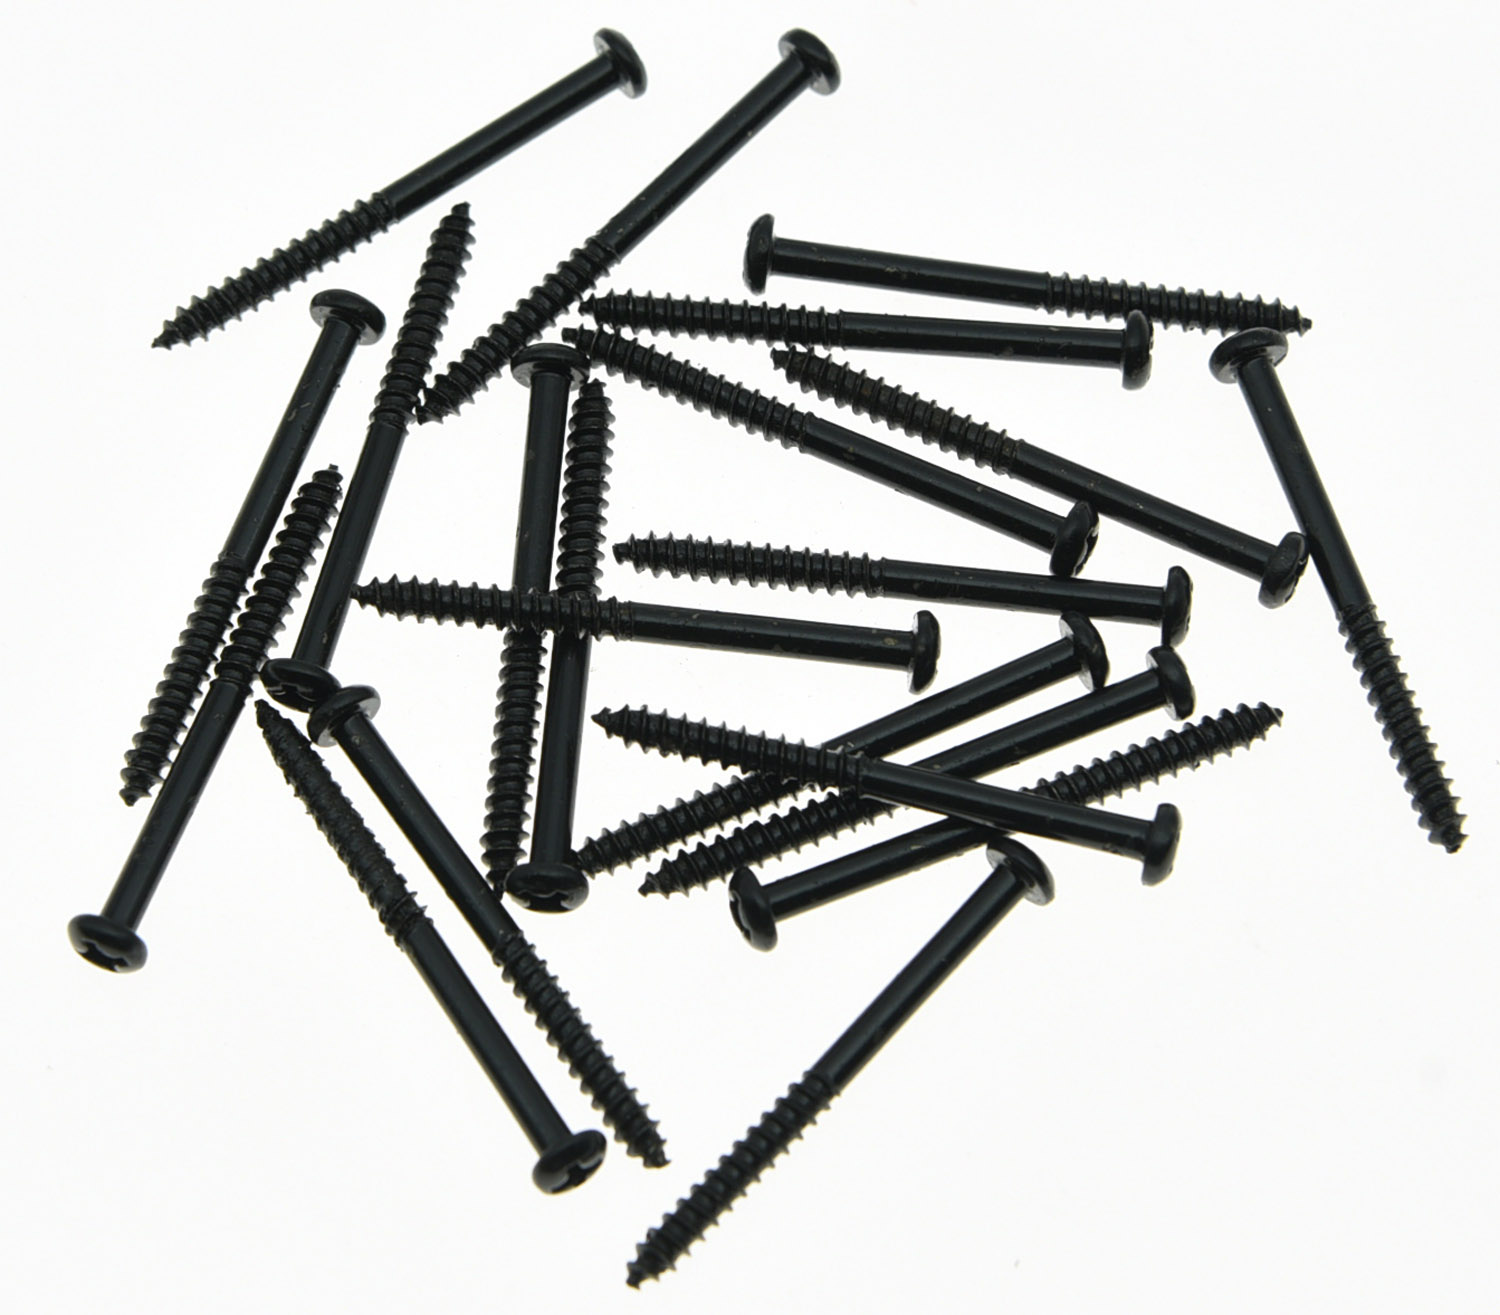 KAISH 20x Bass Pickup Mounting Screws for PB JB  P90 Pickups Black kaish black p90 high power sound neck